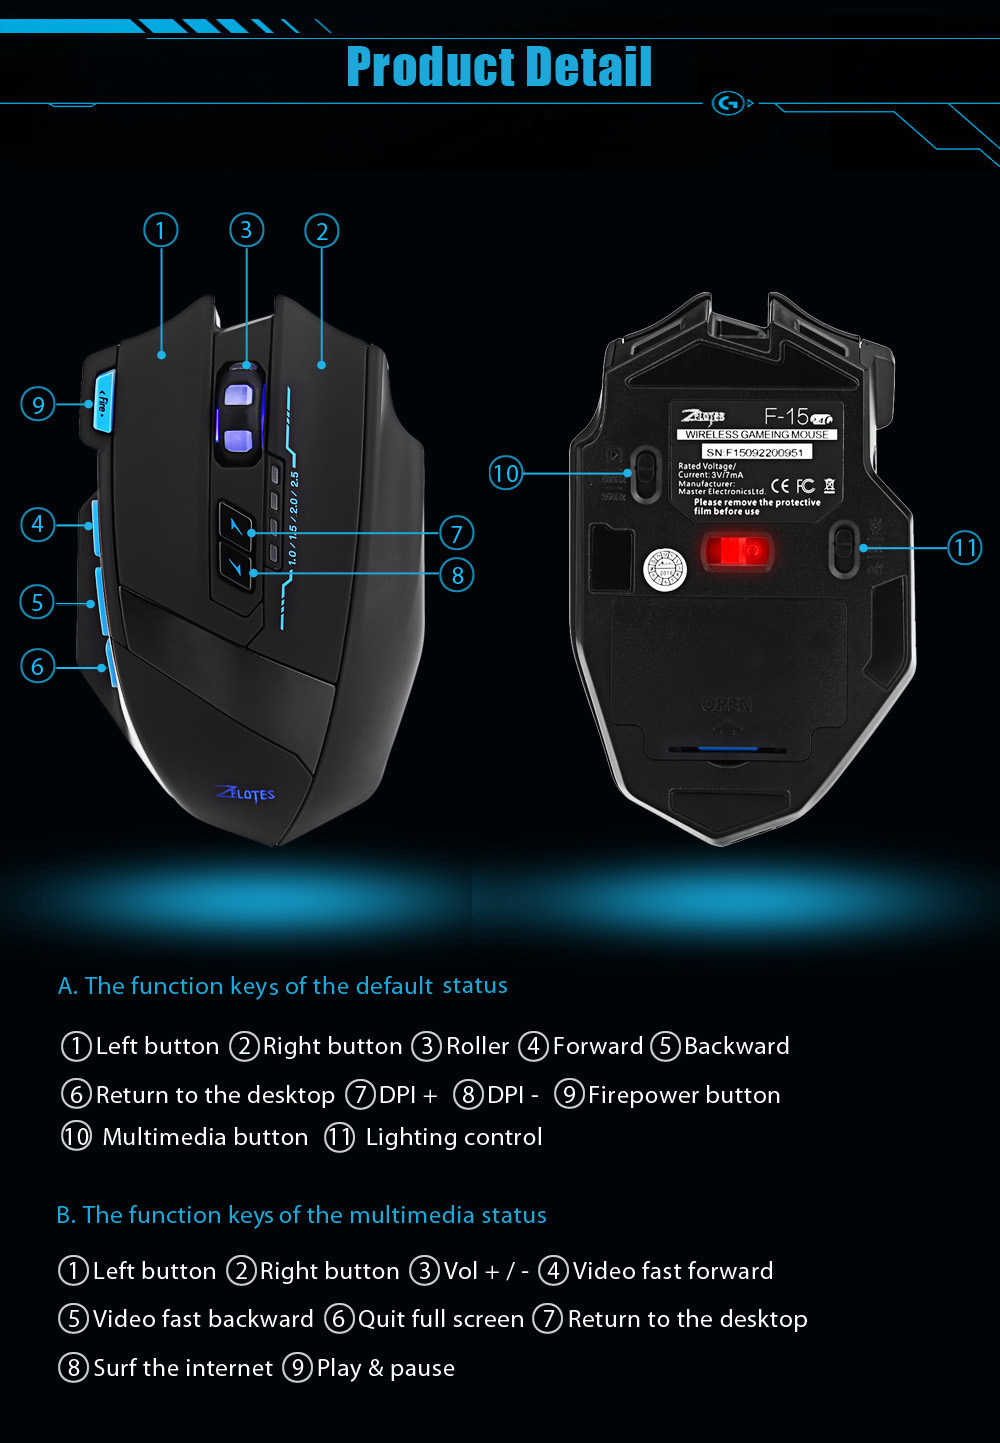 ZELOTES F - 15 2500DPI Wireless / Wired Gaming Ergonomic Design Optical Mouse with USB 3.0 Receiver